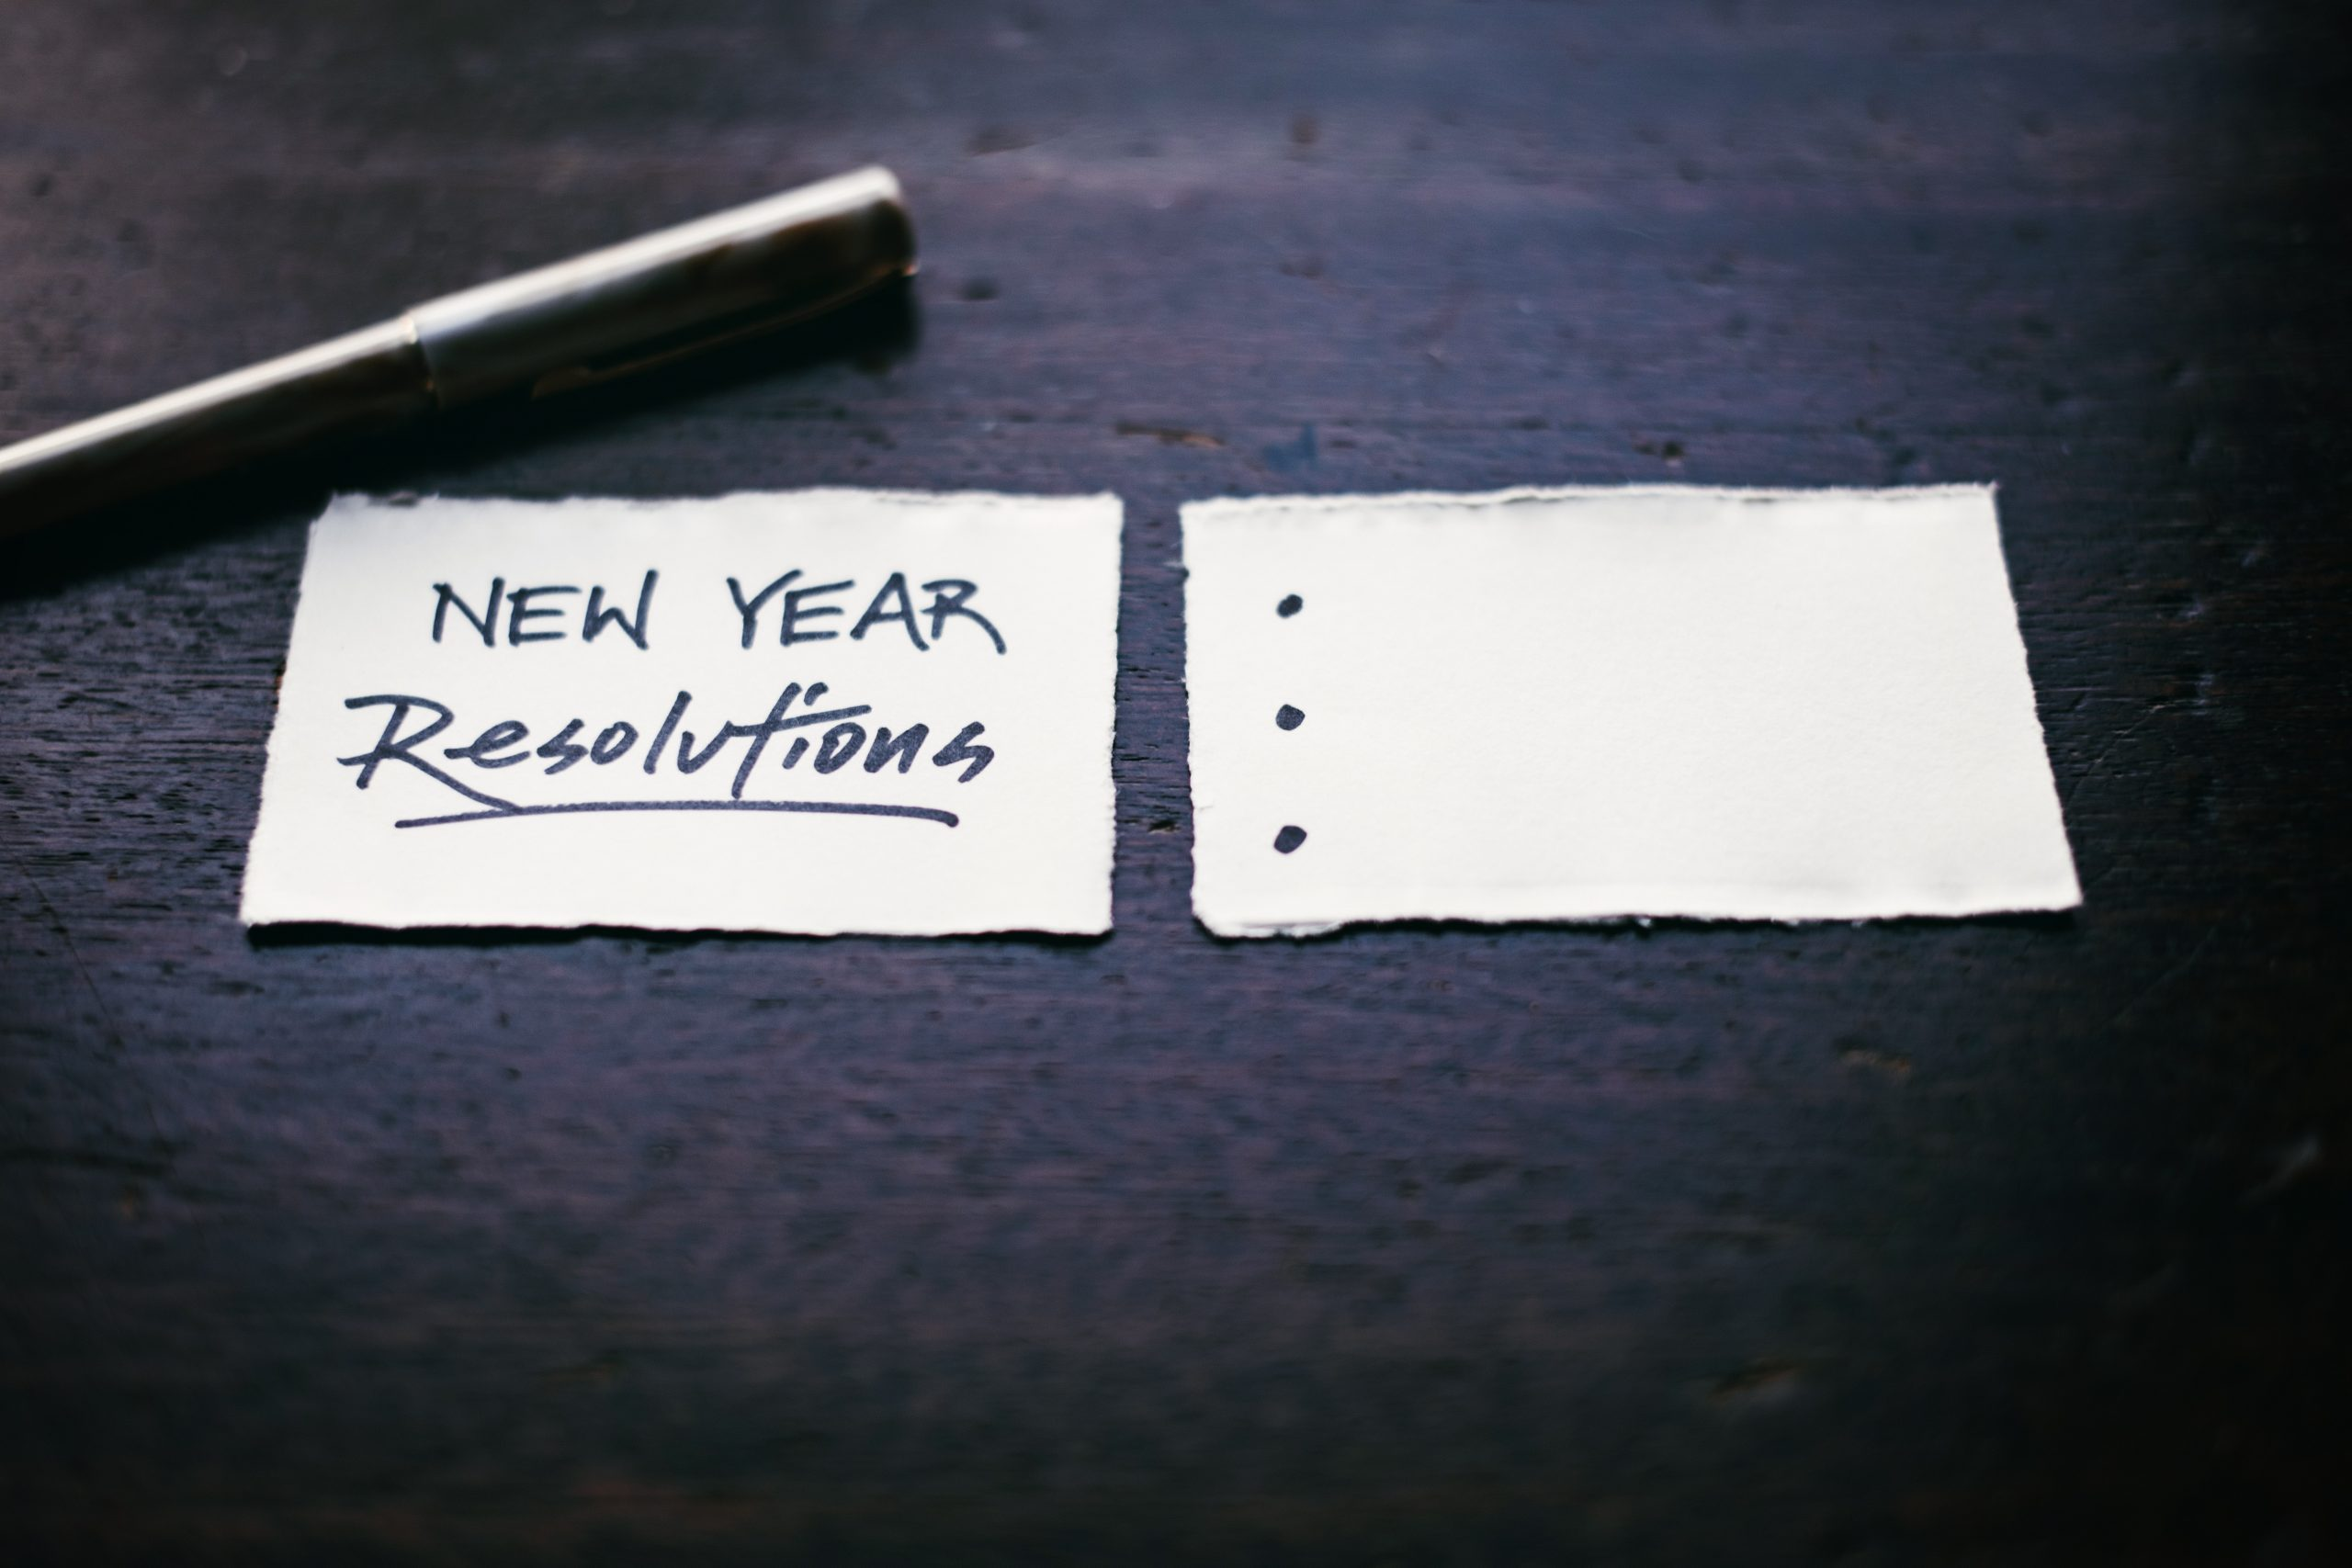 Resolutions & Intentions for the New Year